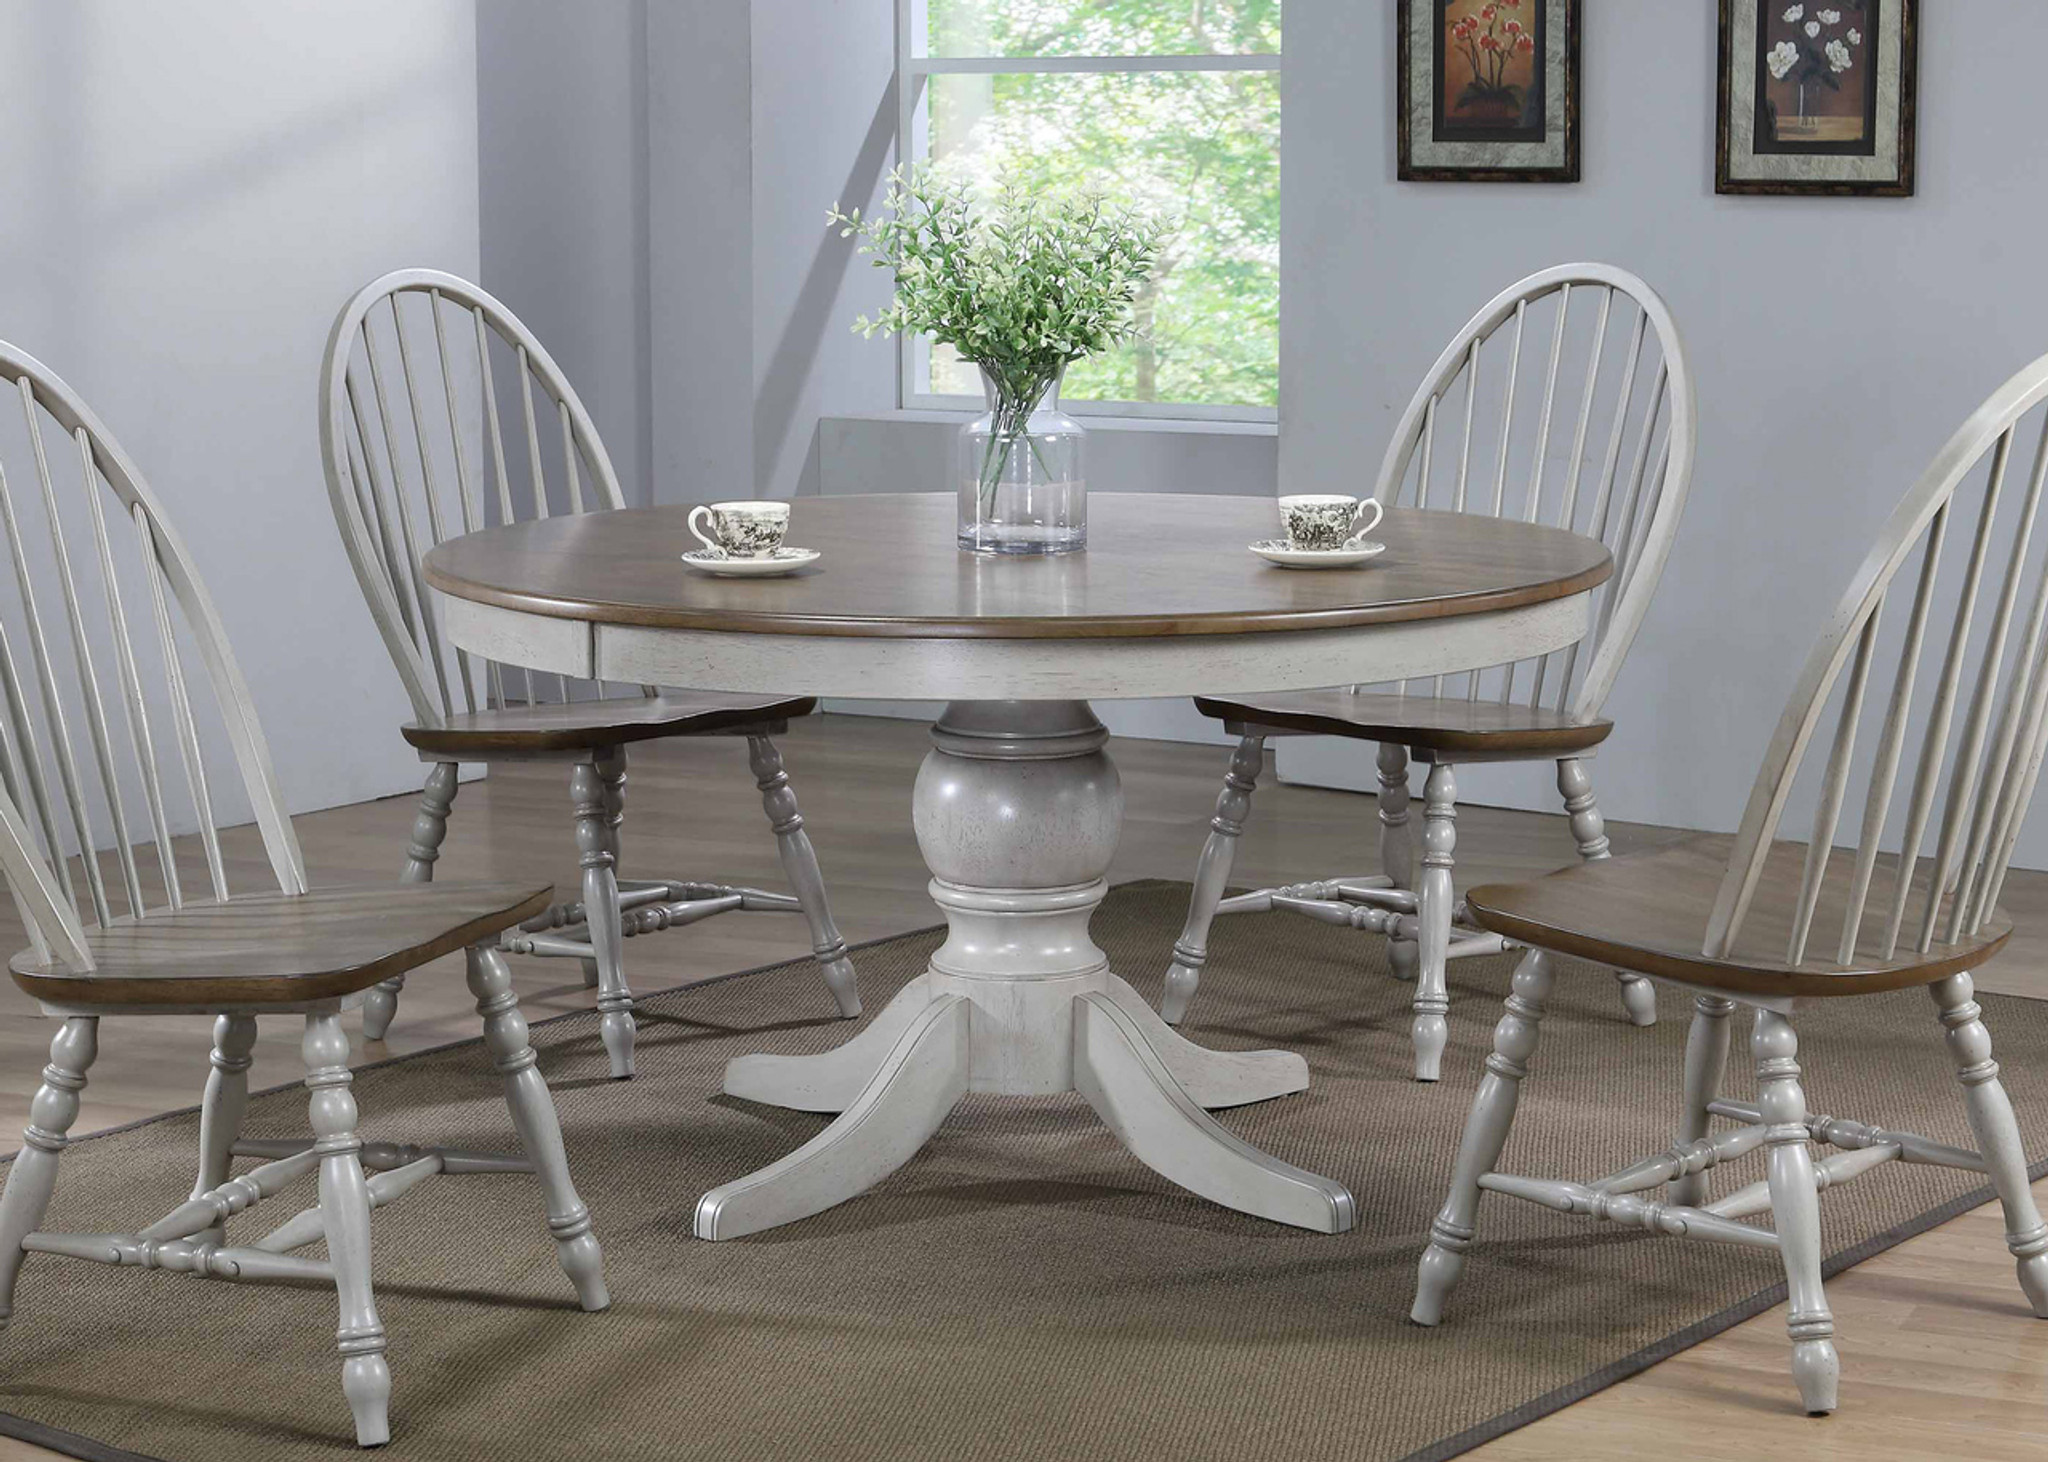 JACK ROUND PEDESTAL TABLE